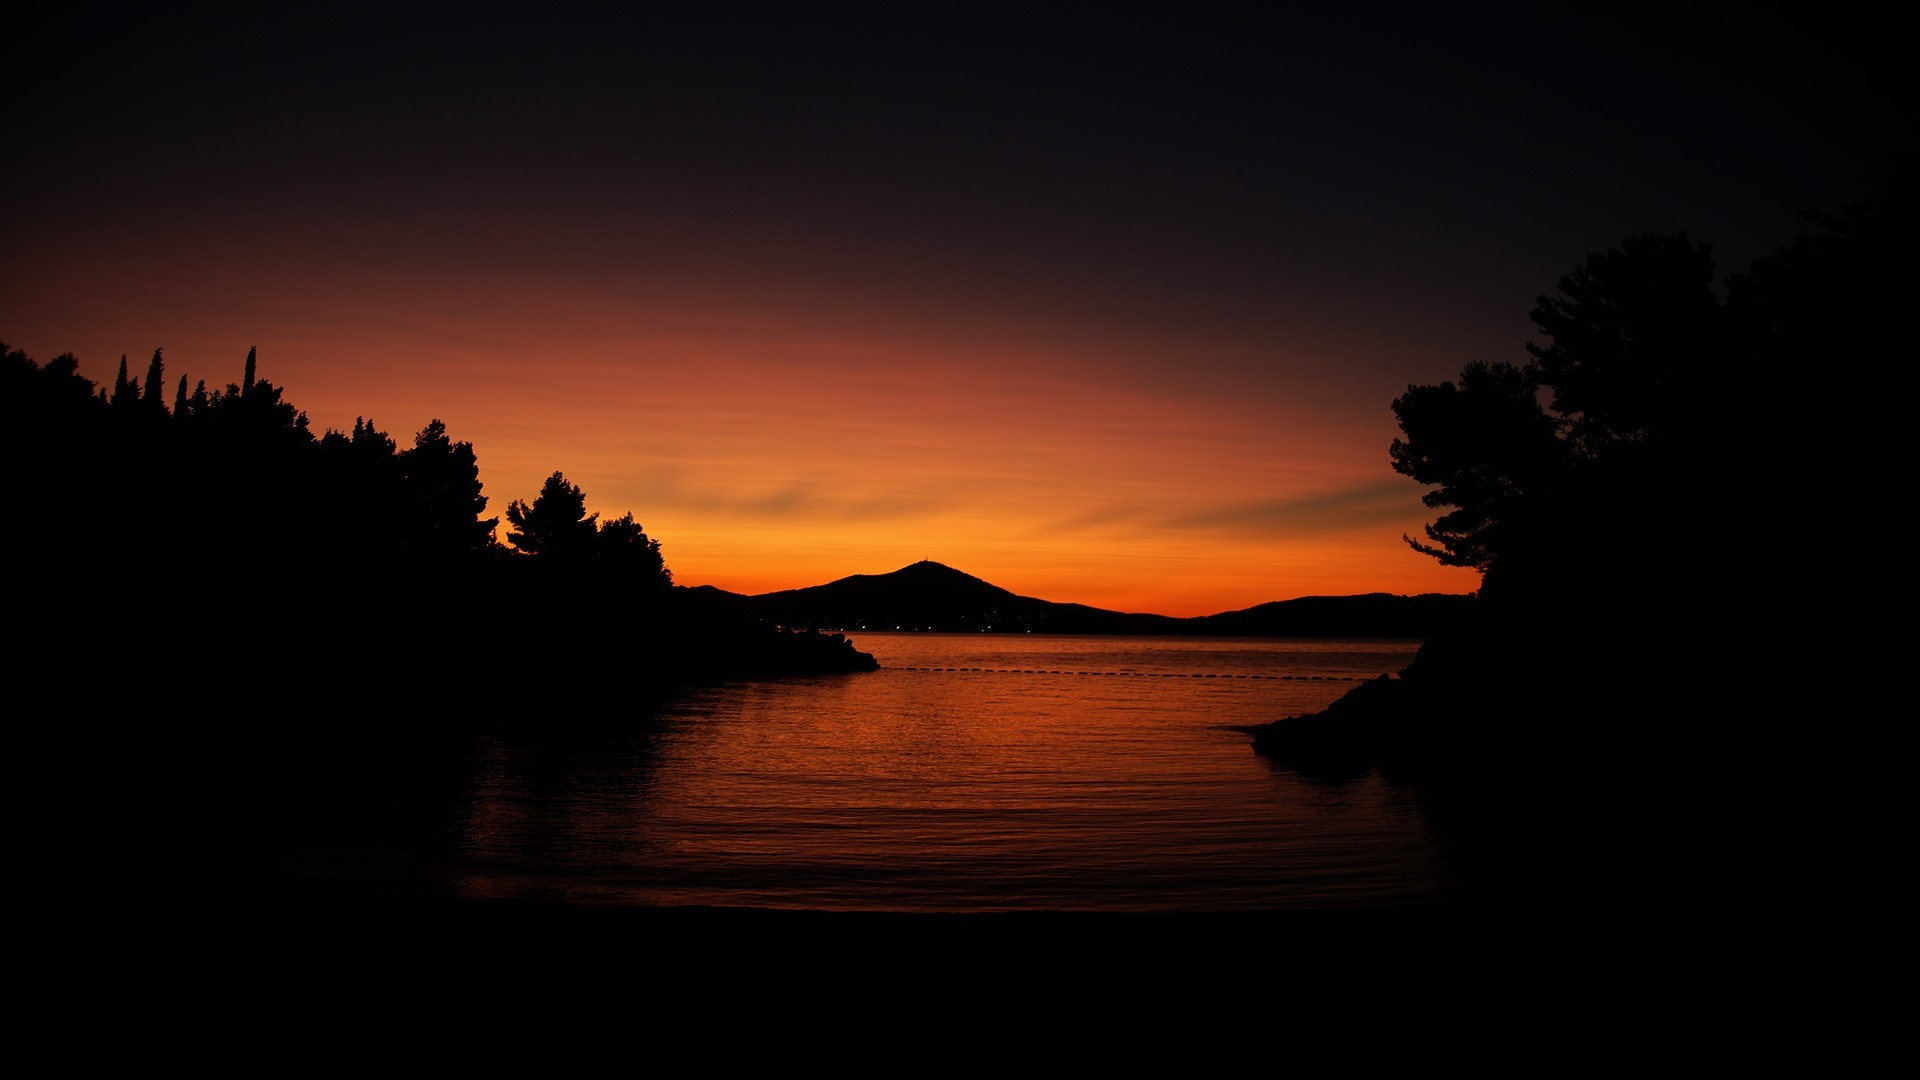 Res: 1920x1080, sunset, Nature, Silhouette, Trees, Water, Calm, Dark, Orange, Hill  Wallpapers HD / Desktop and Mobile Backgrounds